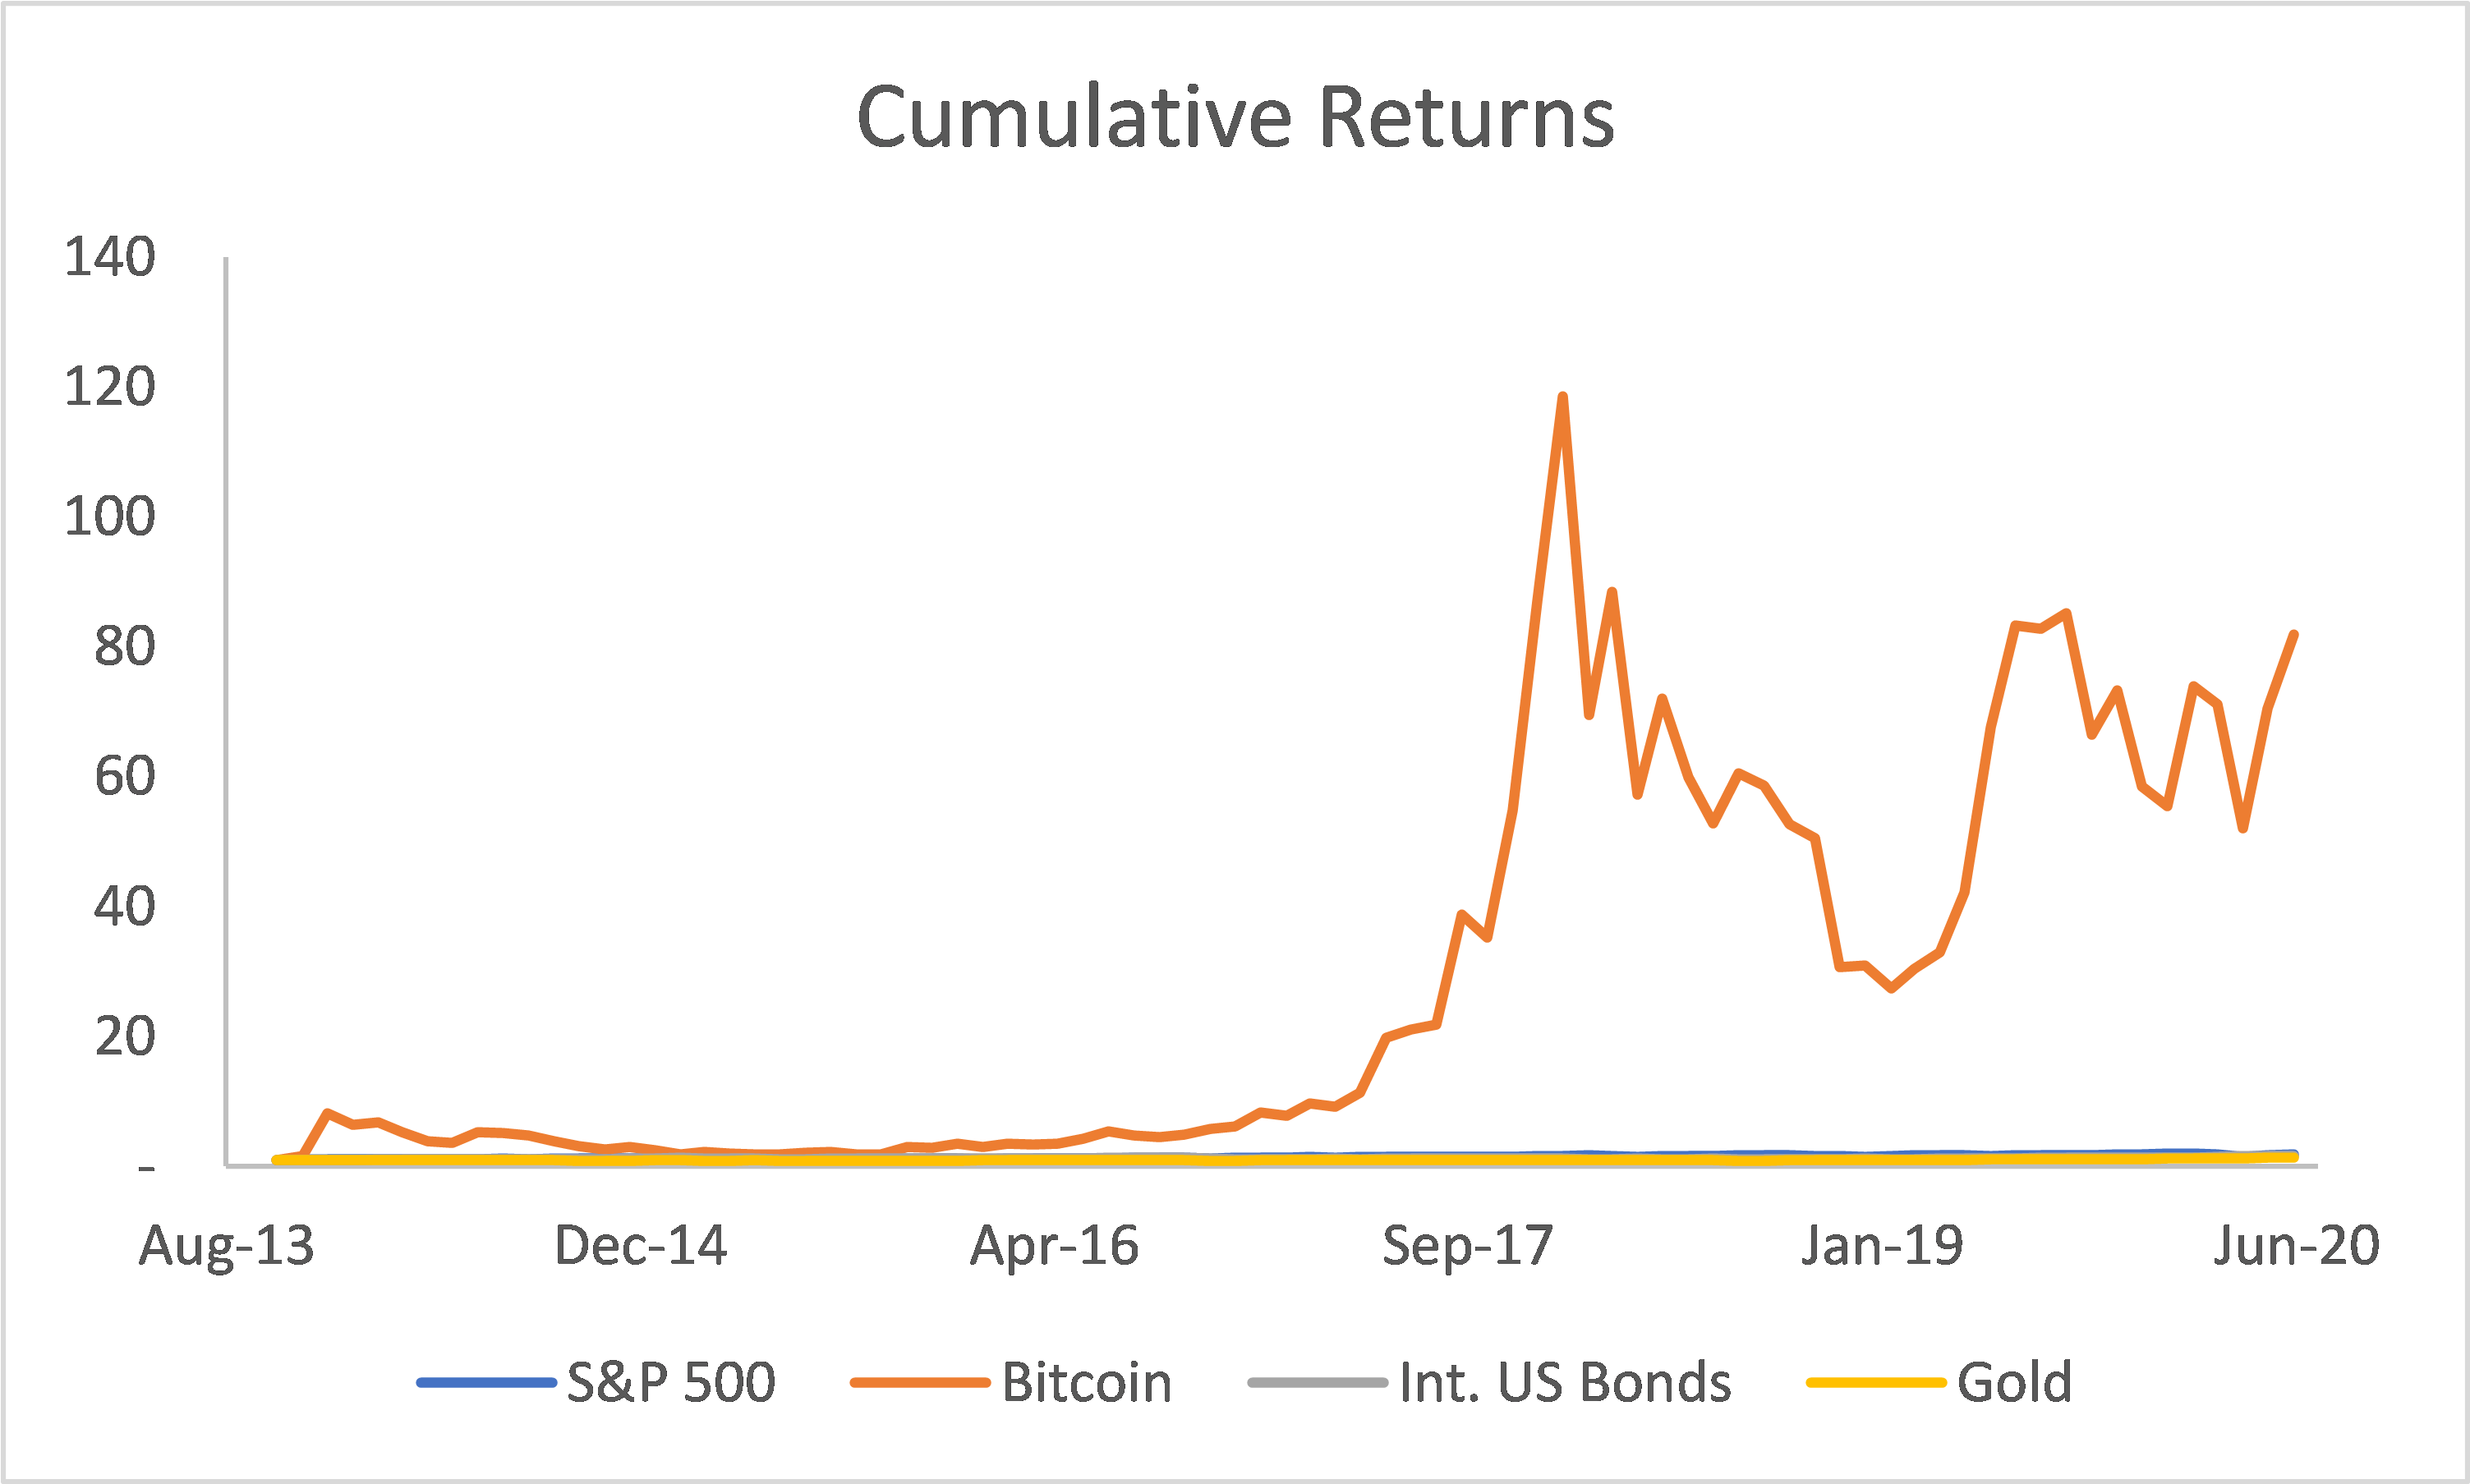 The line for Bitcoin fluctuates wildly while the other lines hover near the ottom of the chart